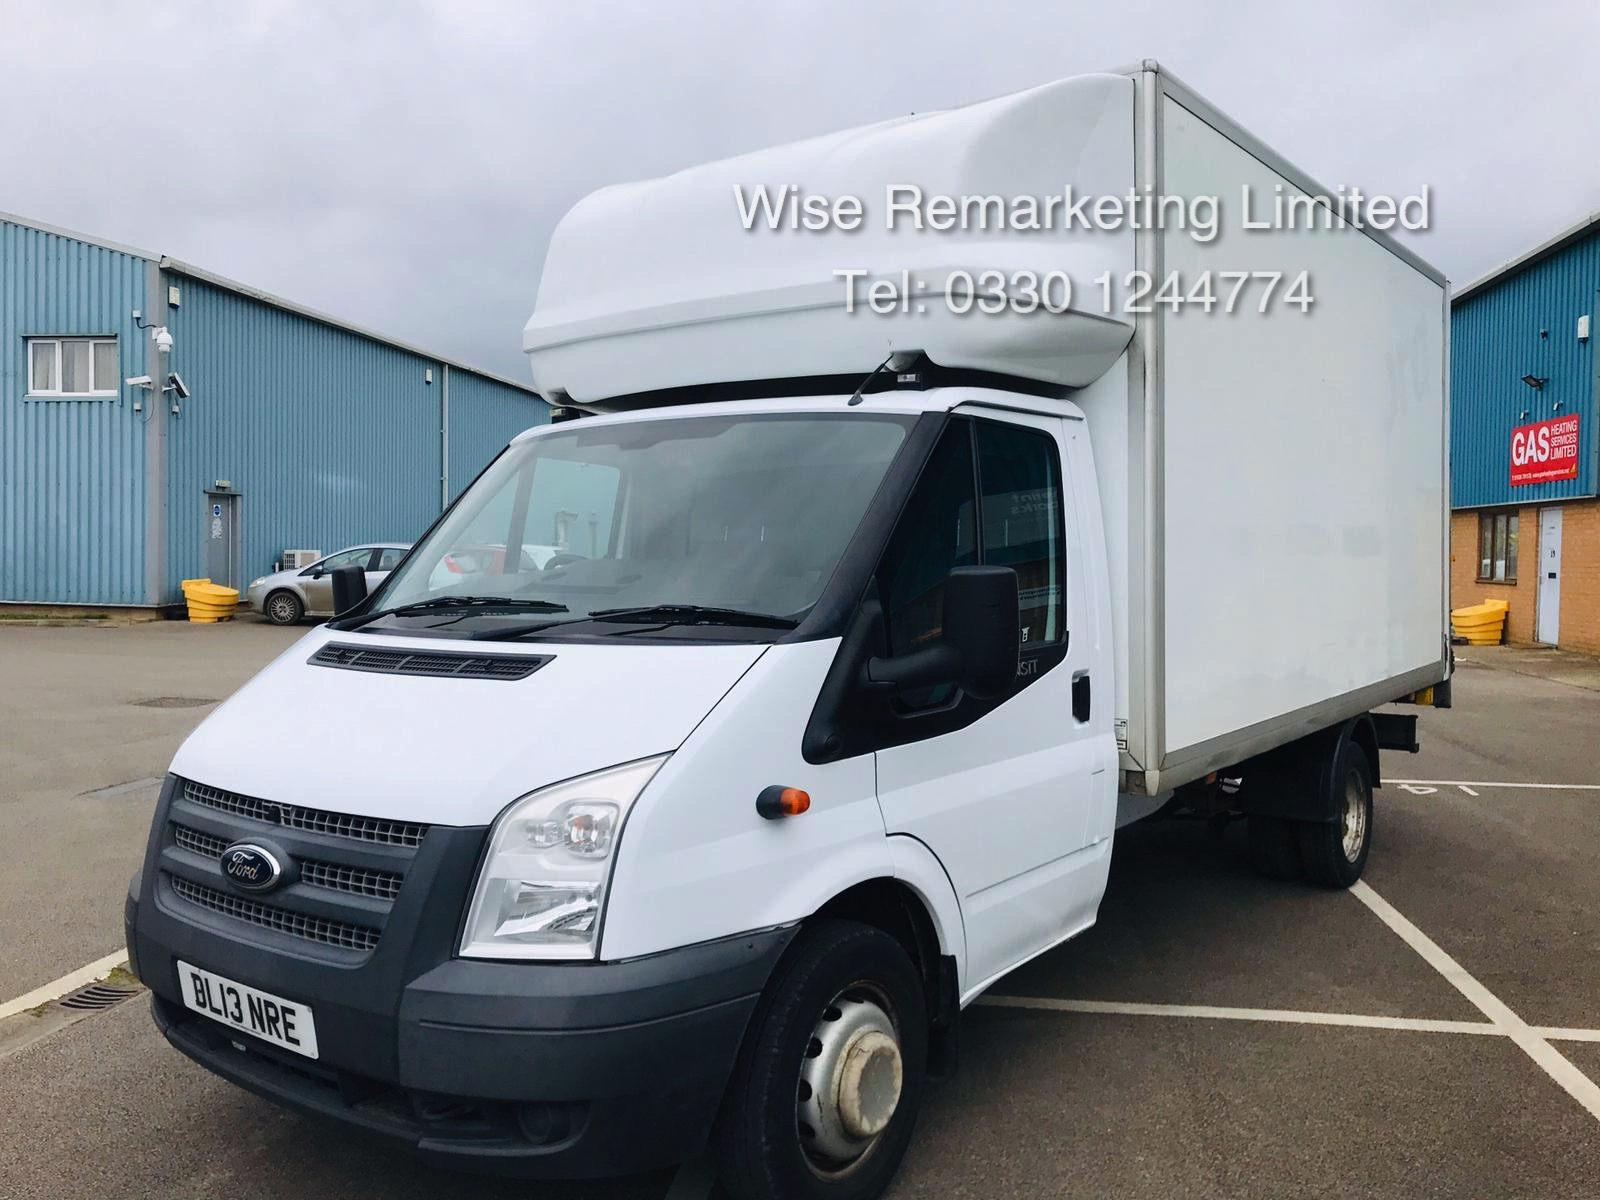 Ford Transit T350 2.2 TDCI Luton Van - 6 Speed - Tail Lift - 2013 13 Reg - SAVE 20% NO VAT